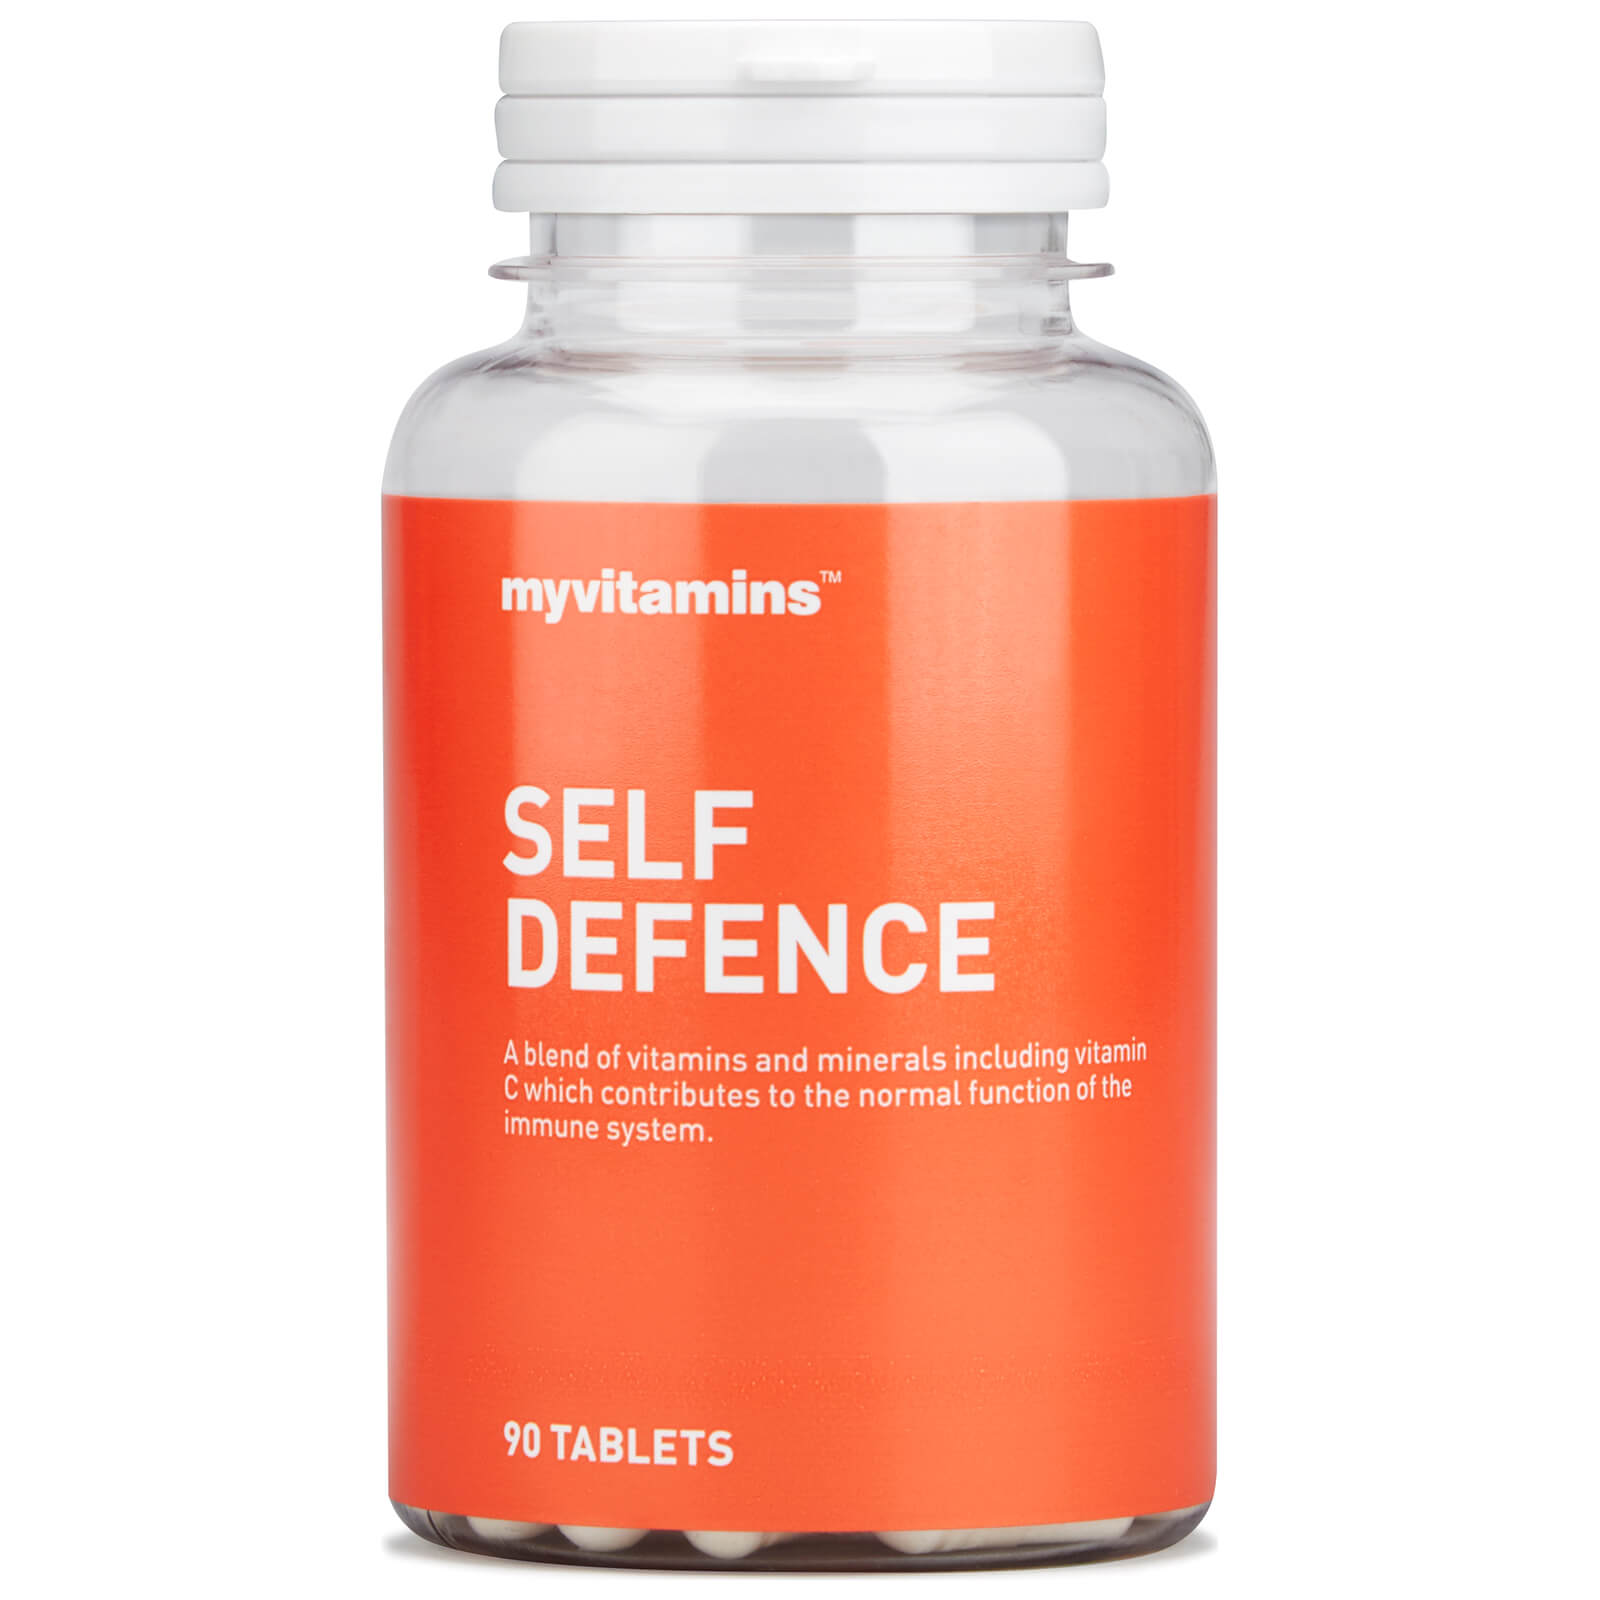 Self Defence (90 Tablets) Myvitamins Myvitamins goedkoop online kopen